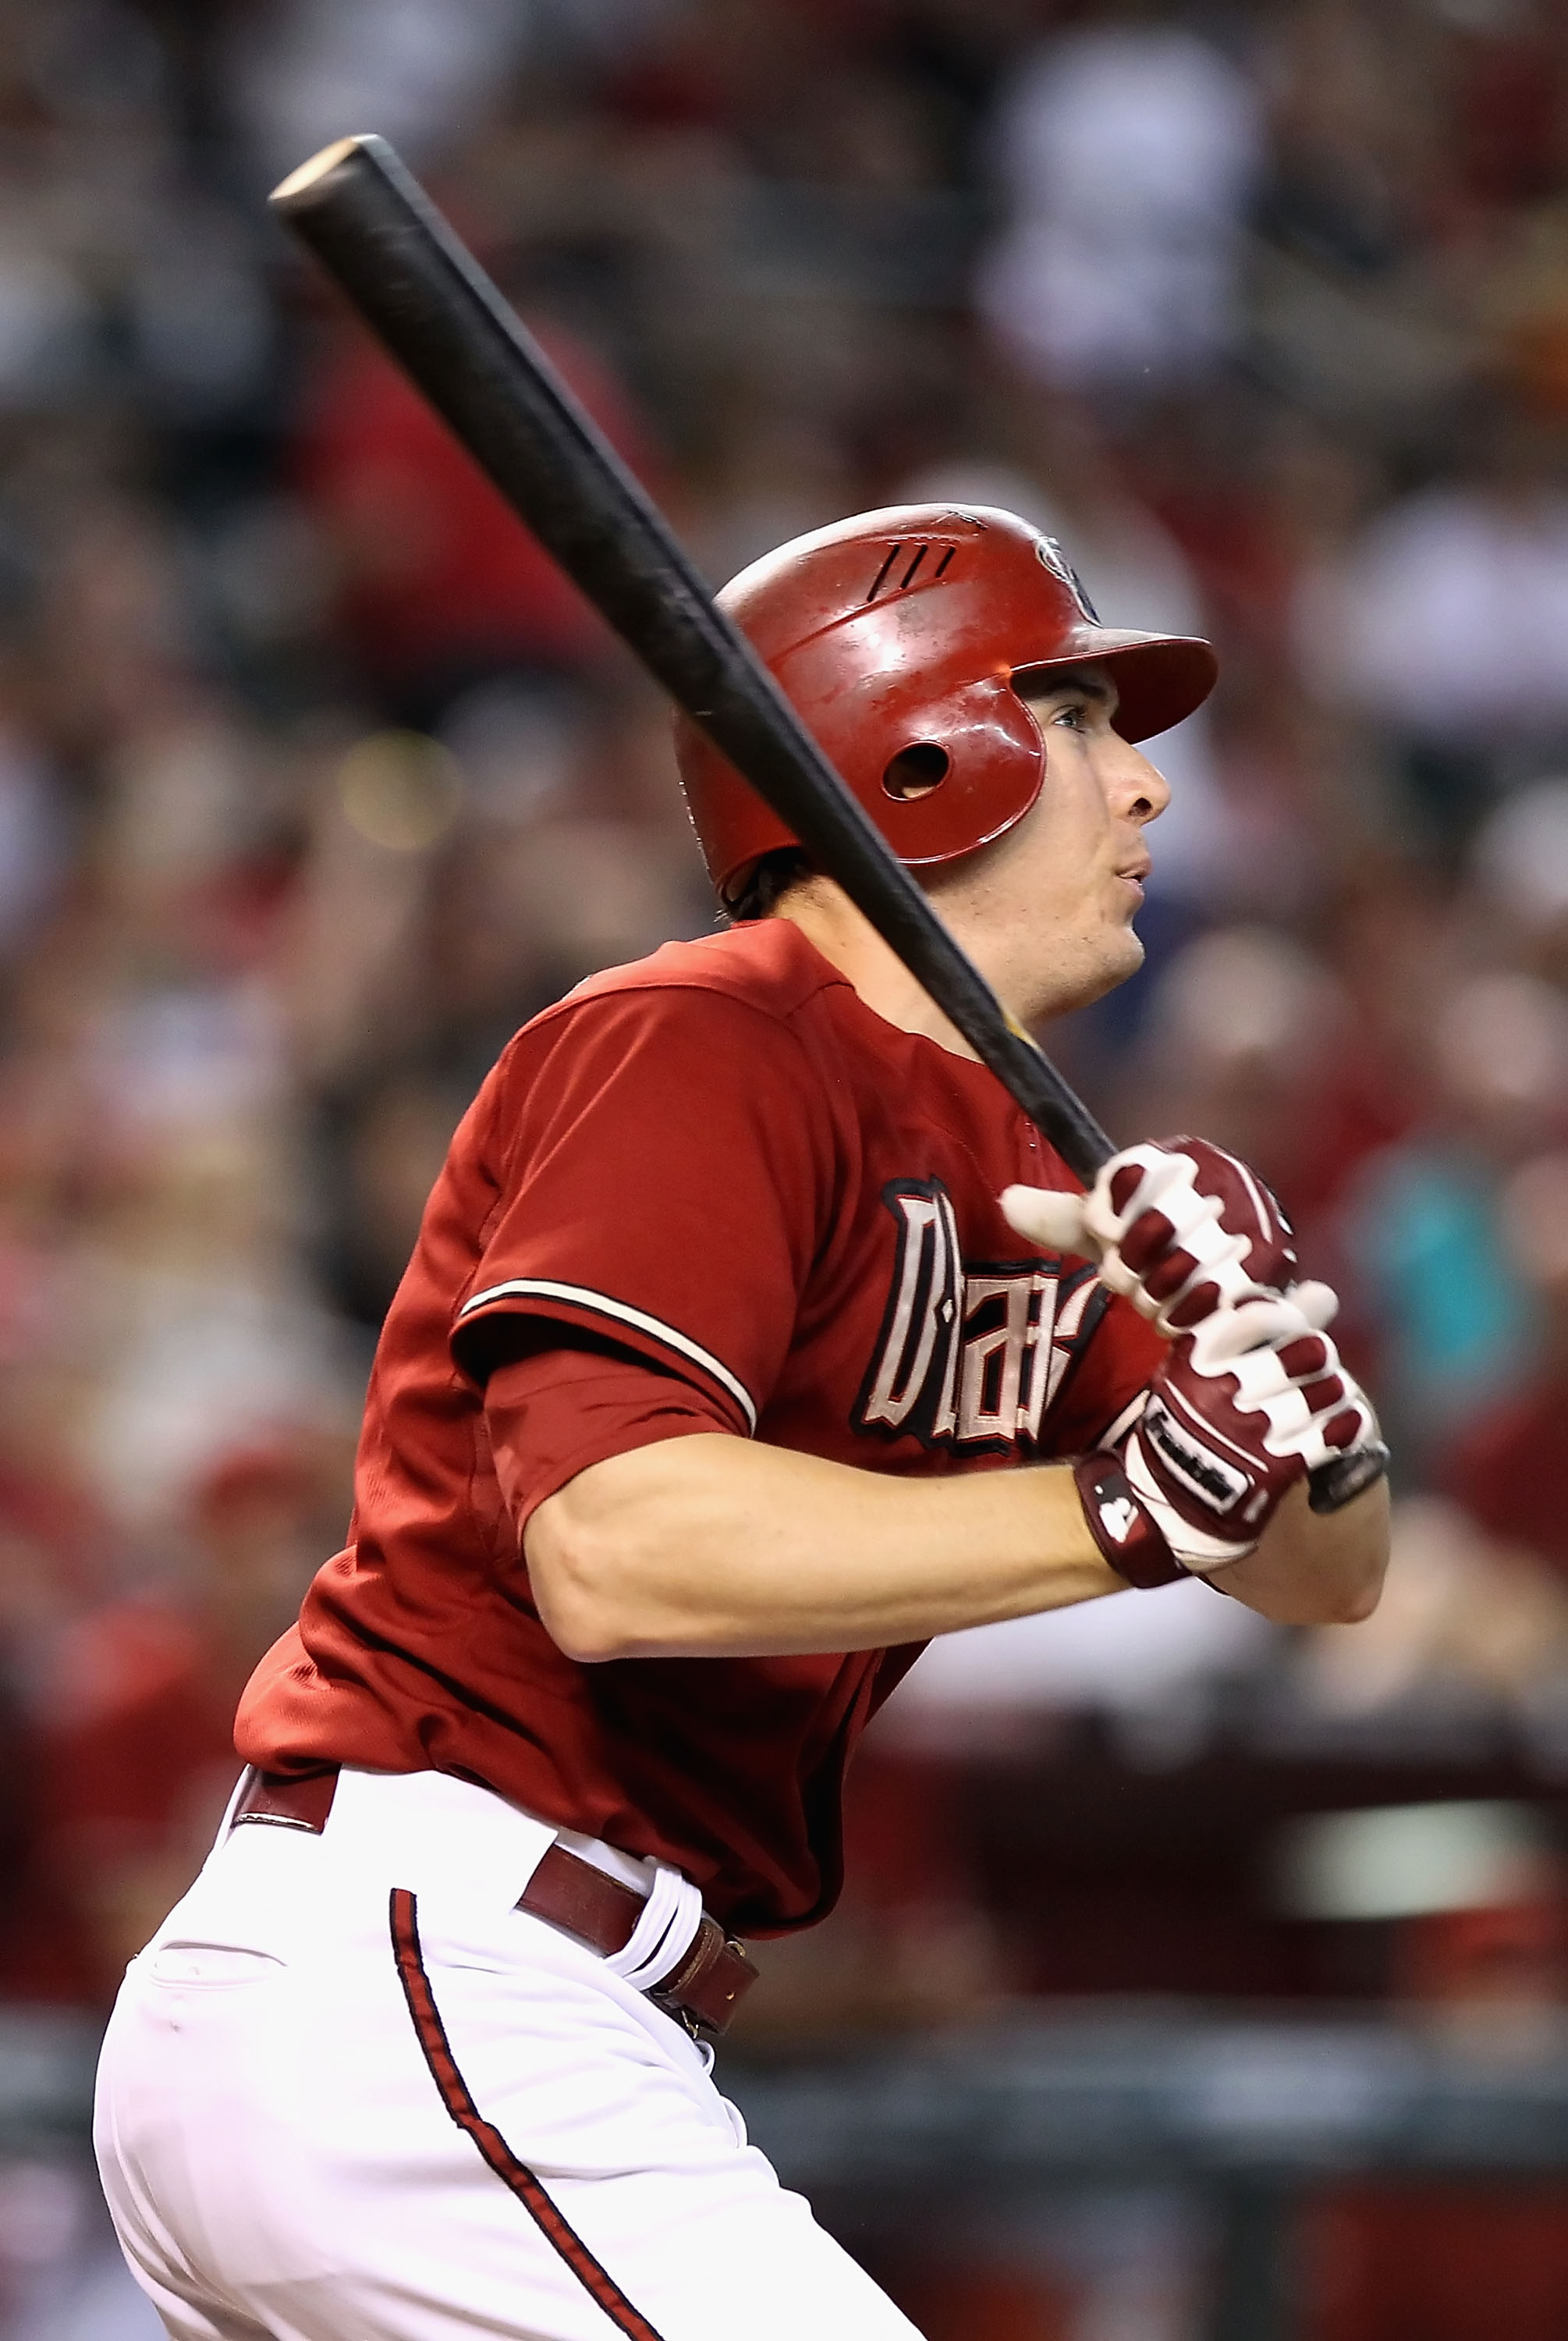 PHOENIX - SEPTEMBER 06:  Kelly Johnson #2 of the Arizona Diamondbacks hits a single against the San Francisco Giants during the Major League Baseball game at Chase Field on September 6, 2010 in Phoenix, Arizona.  (Photo by Christian Petersen/Getty Images)